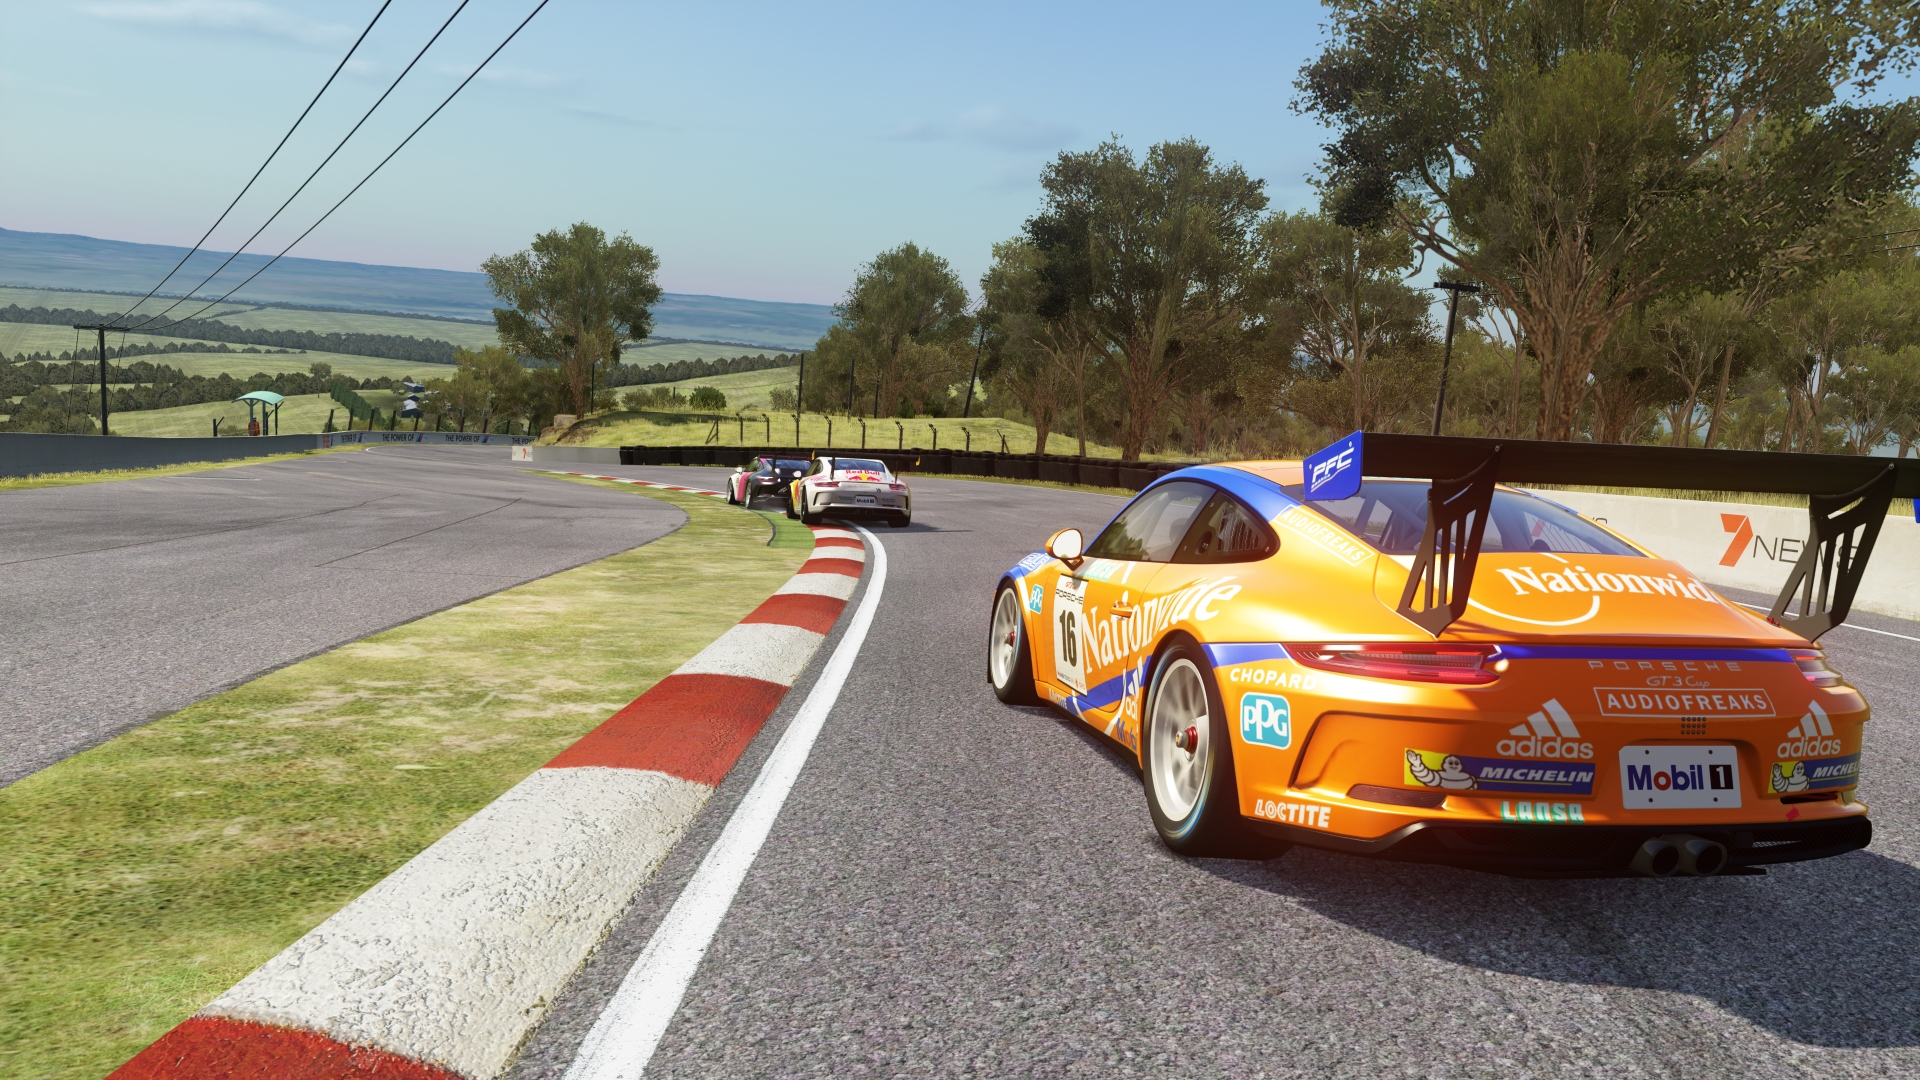 Screenshot_ks_porsche_911_gt3_cup_2017_bathurst_fm7_30-9-119-12-31-17.jpg